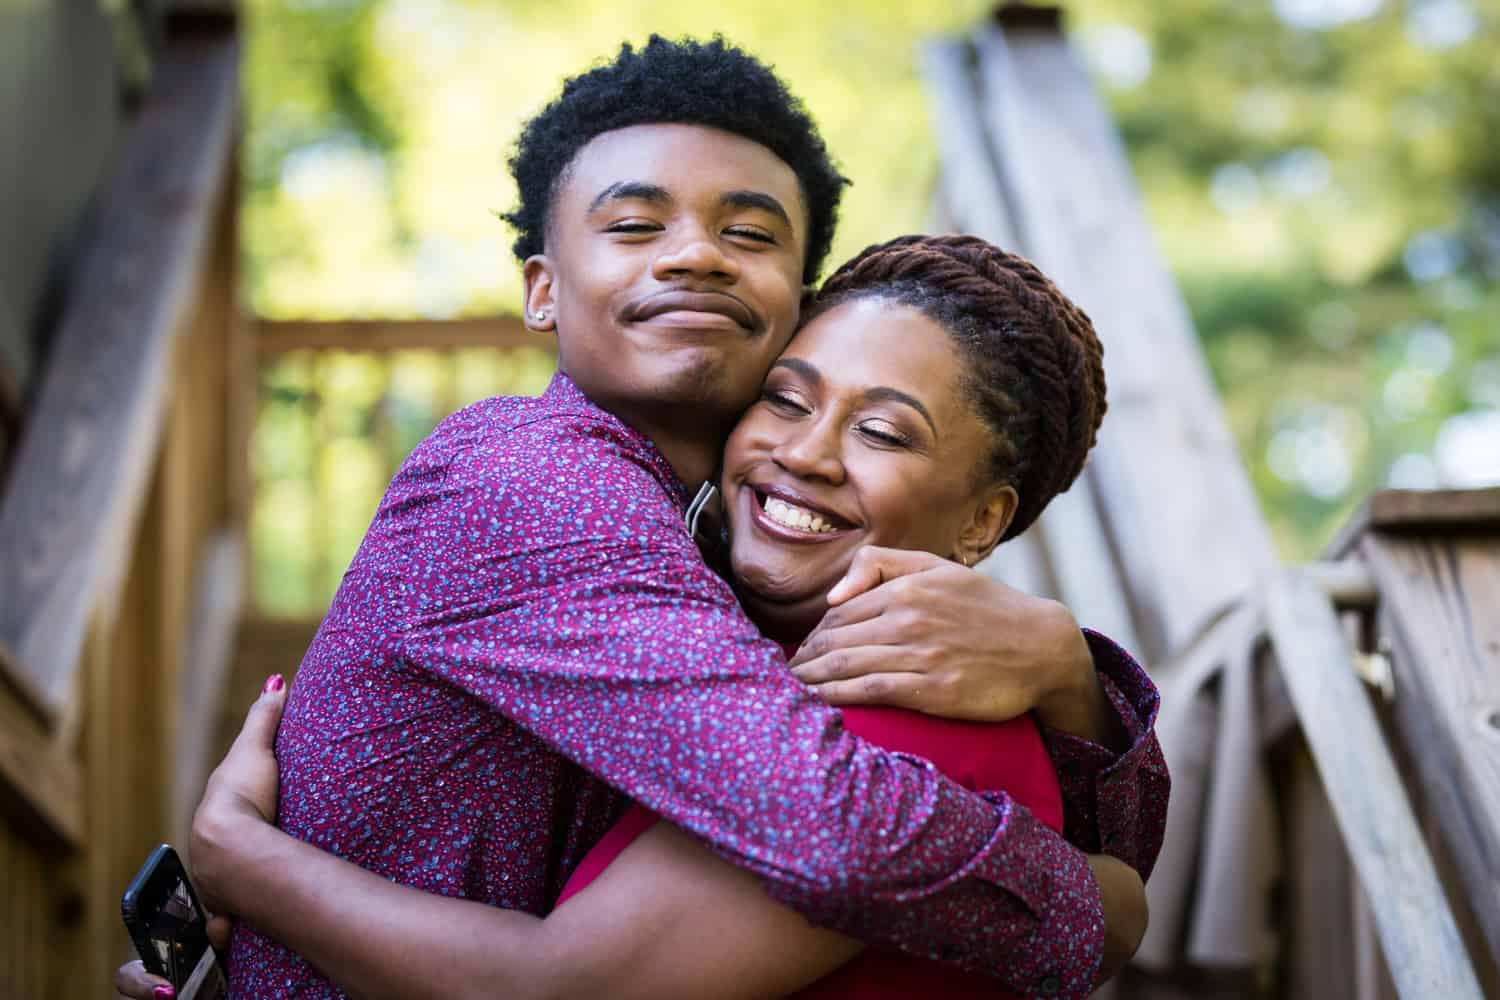 African American mother and son hugging during a family reunion portrait